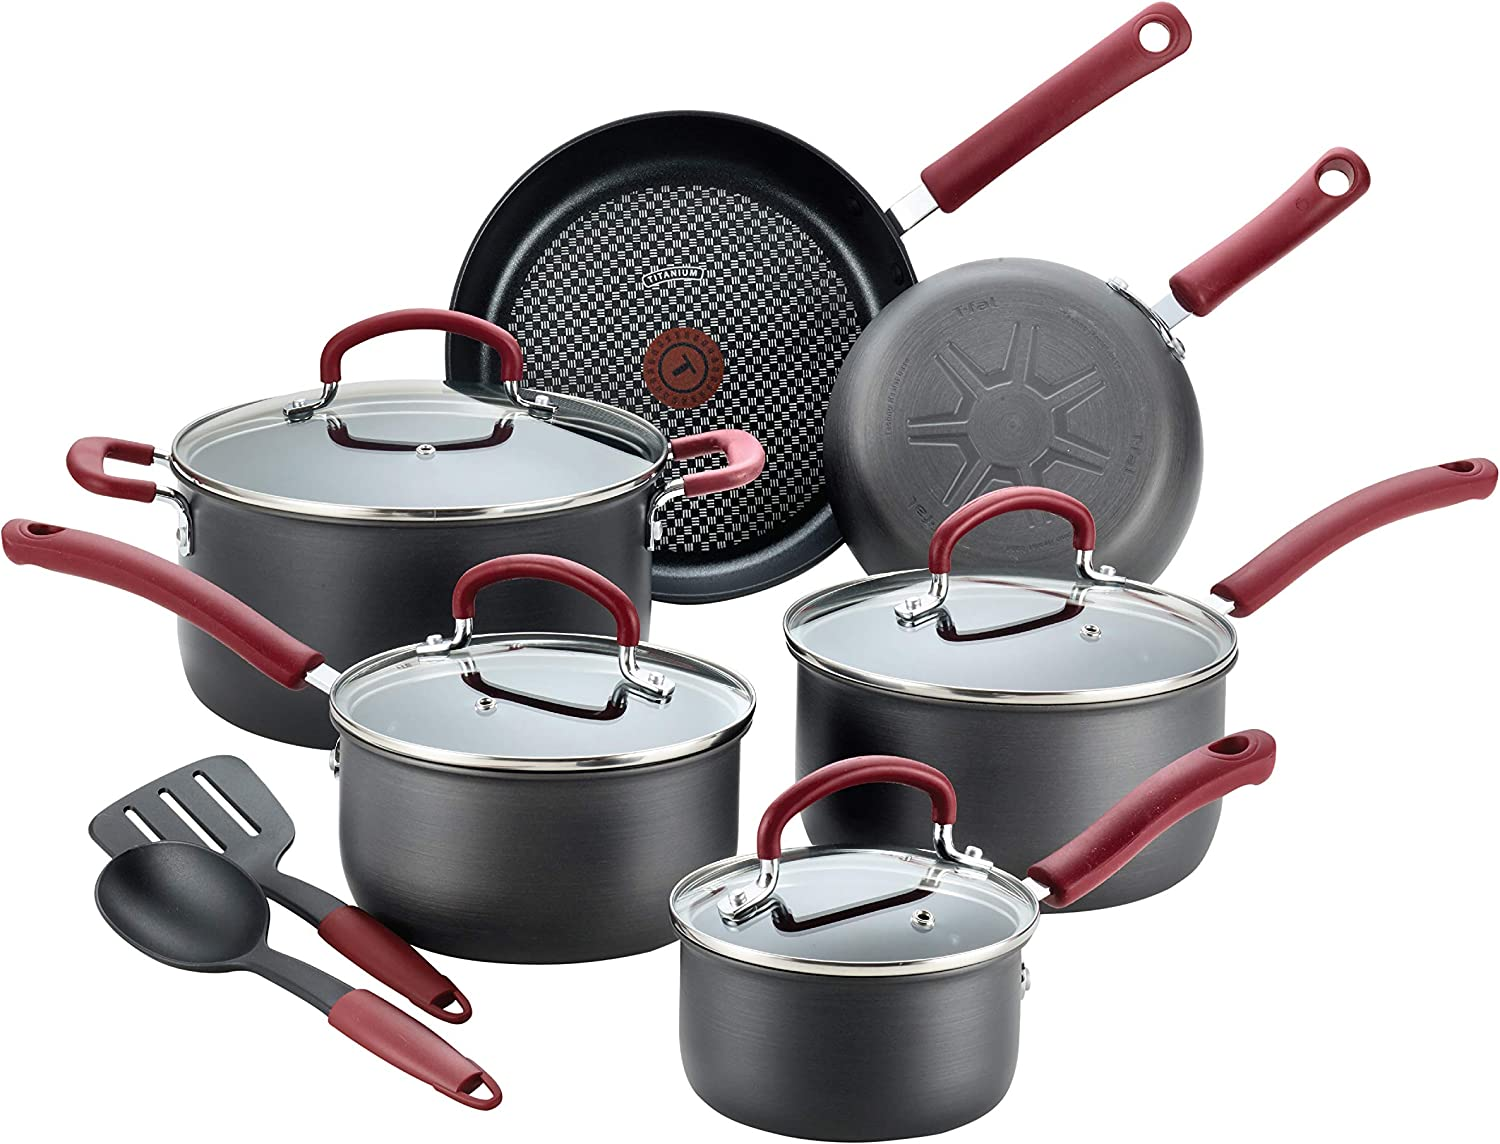 T-fal B004SC63 Ultimate Hard Anodized Cookware Set, 12-Piece, Red